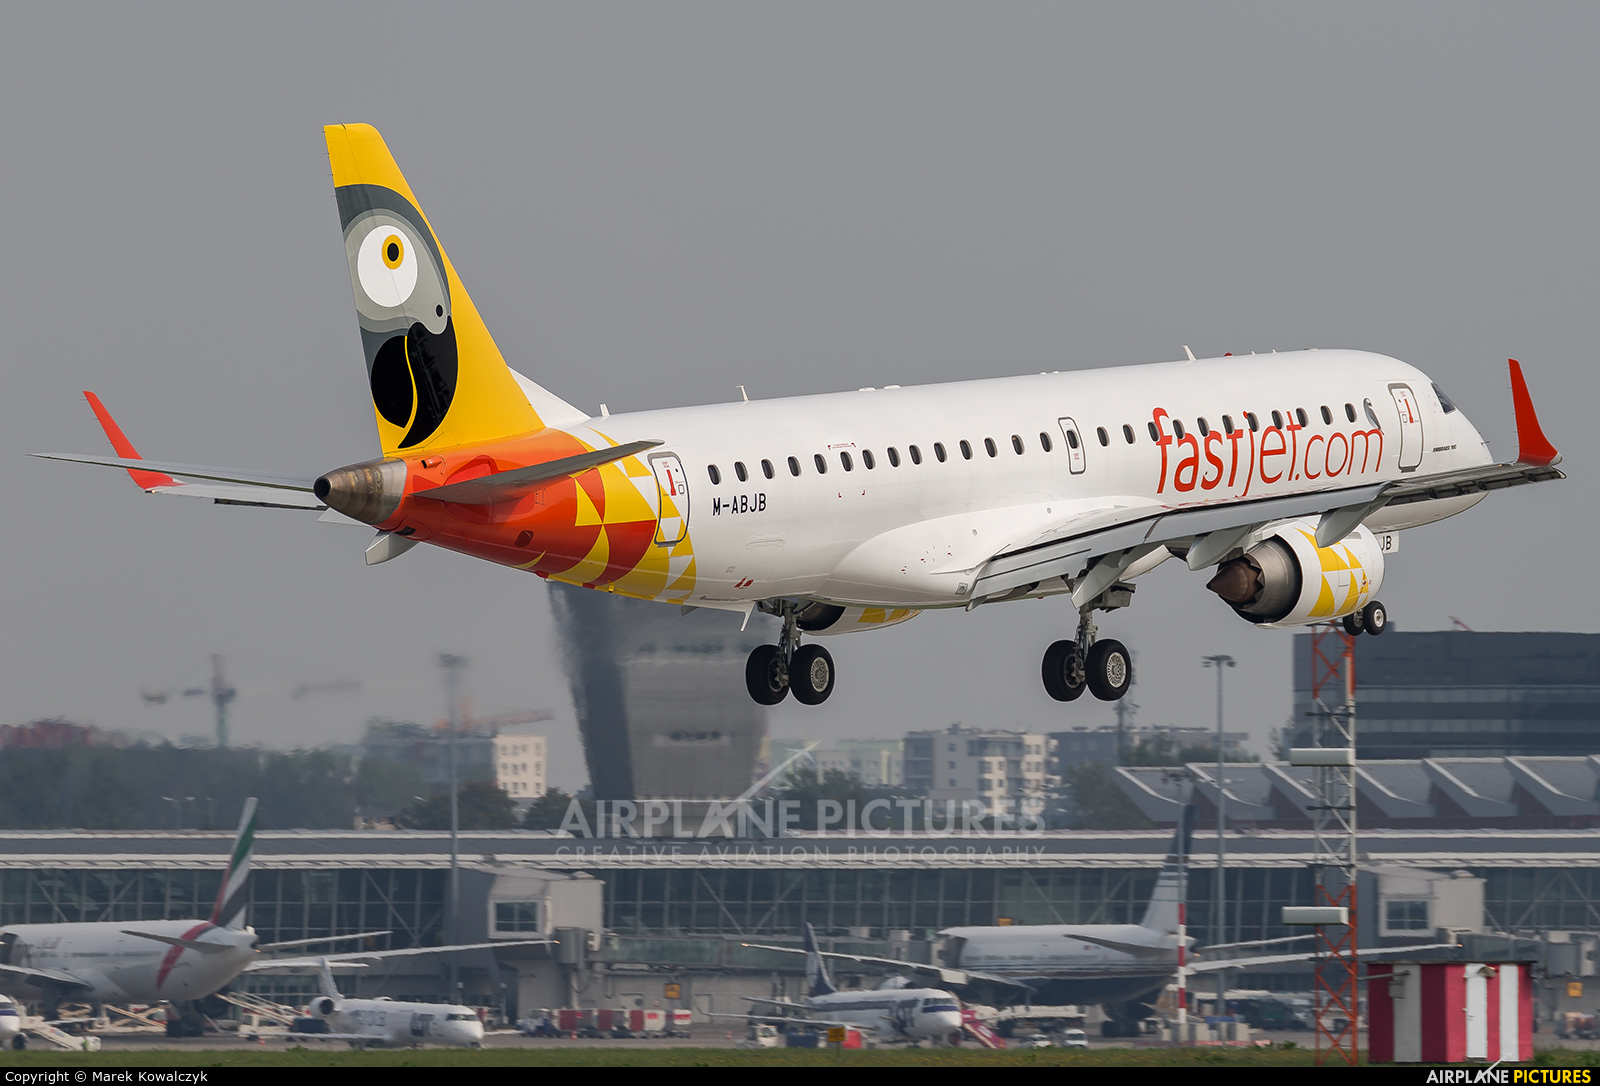 Fastjet M-ABJB aircraft at Warsaw - Frederic Chopin